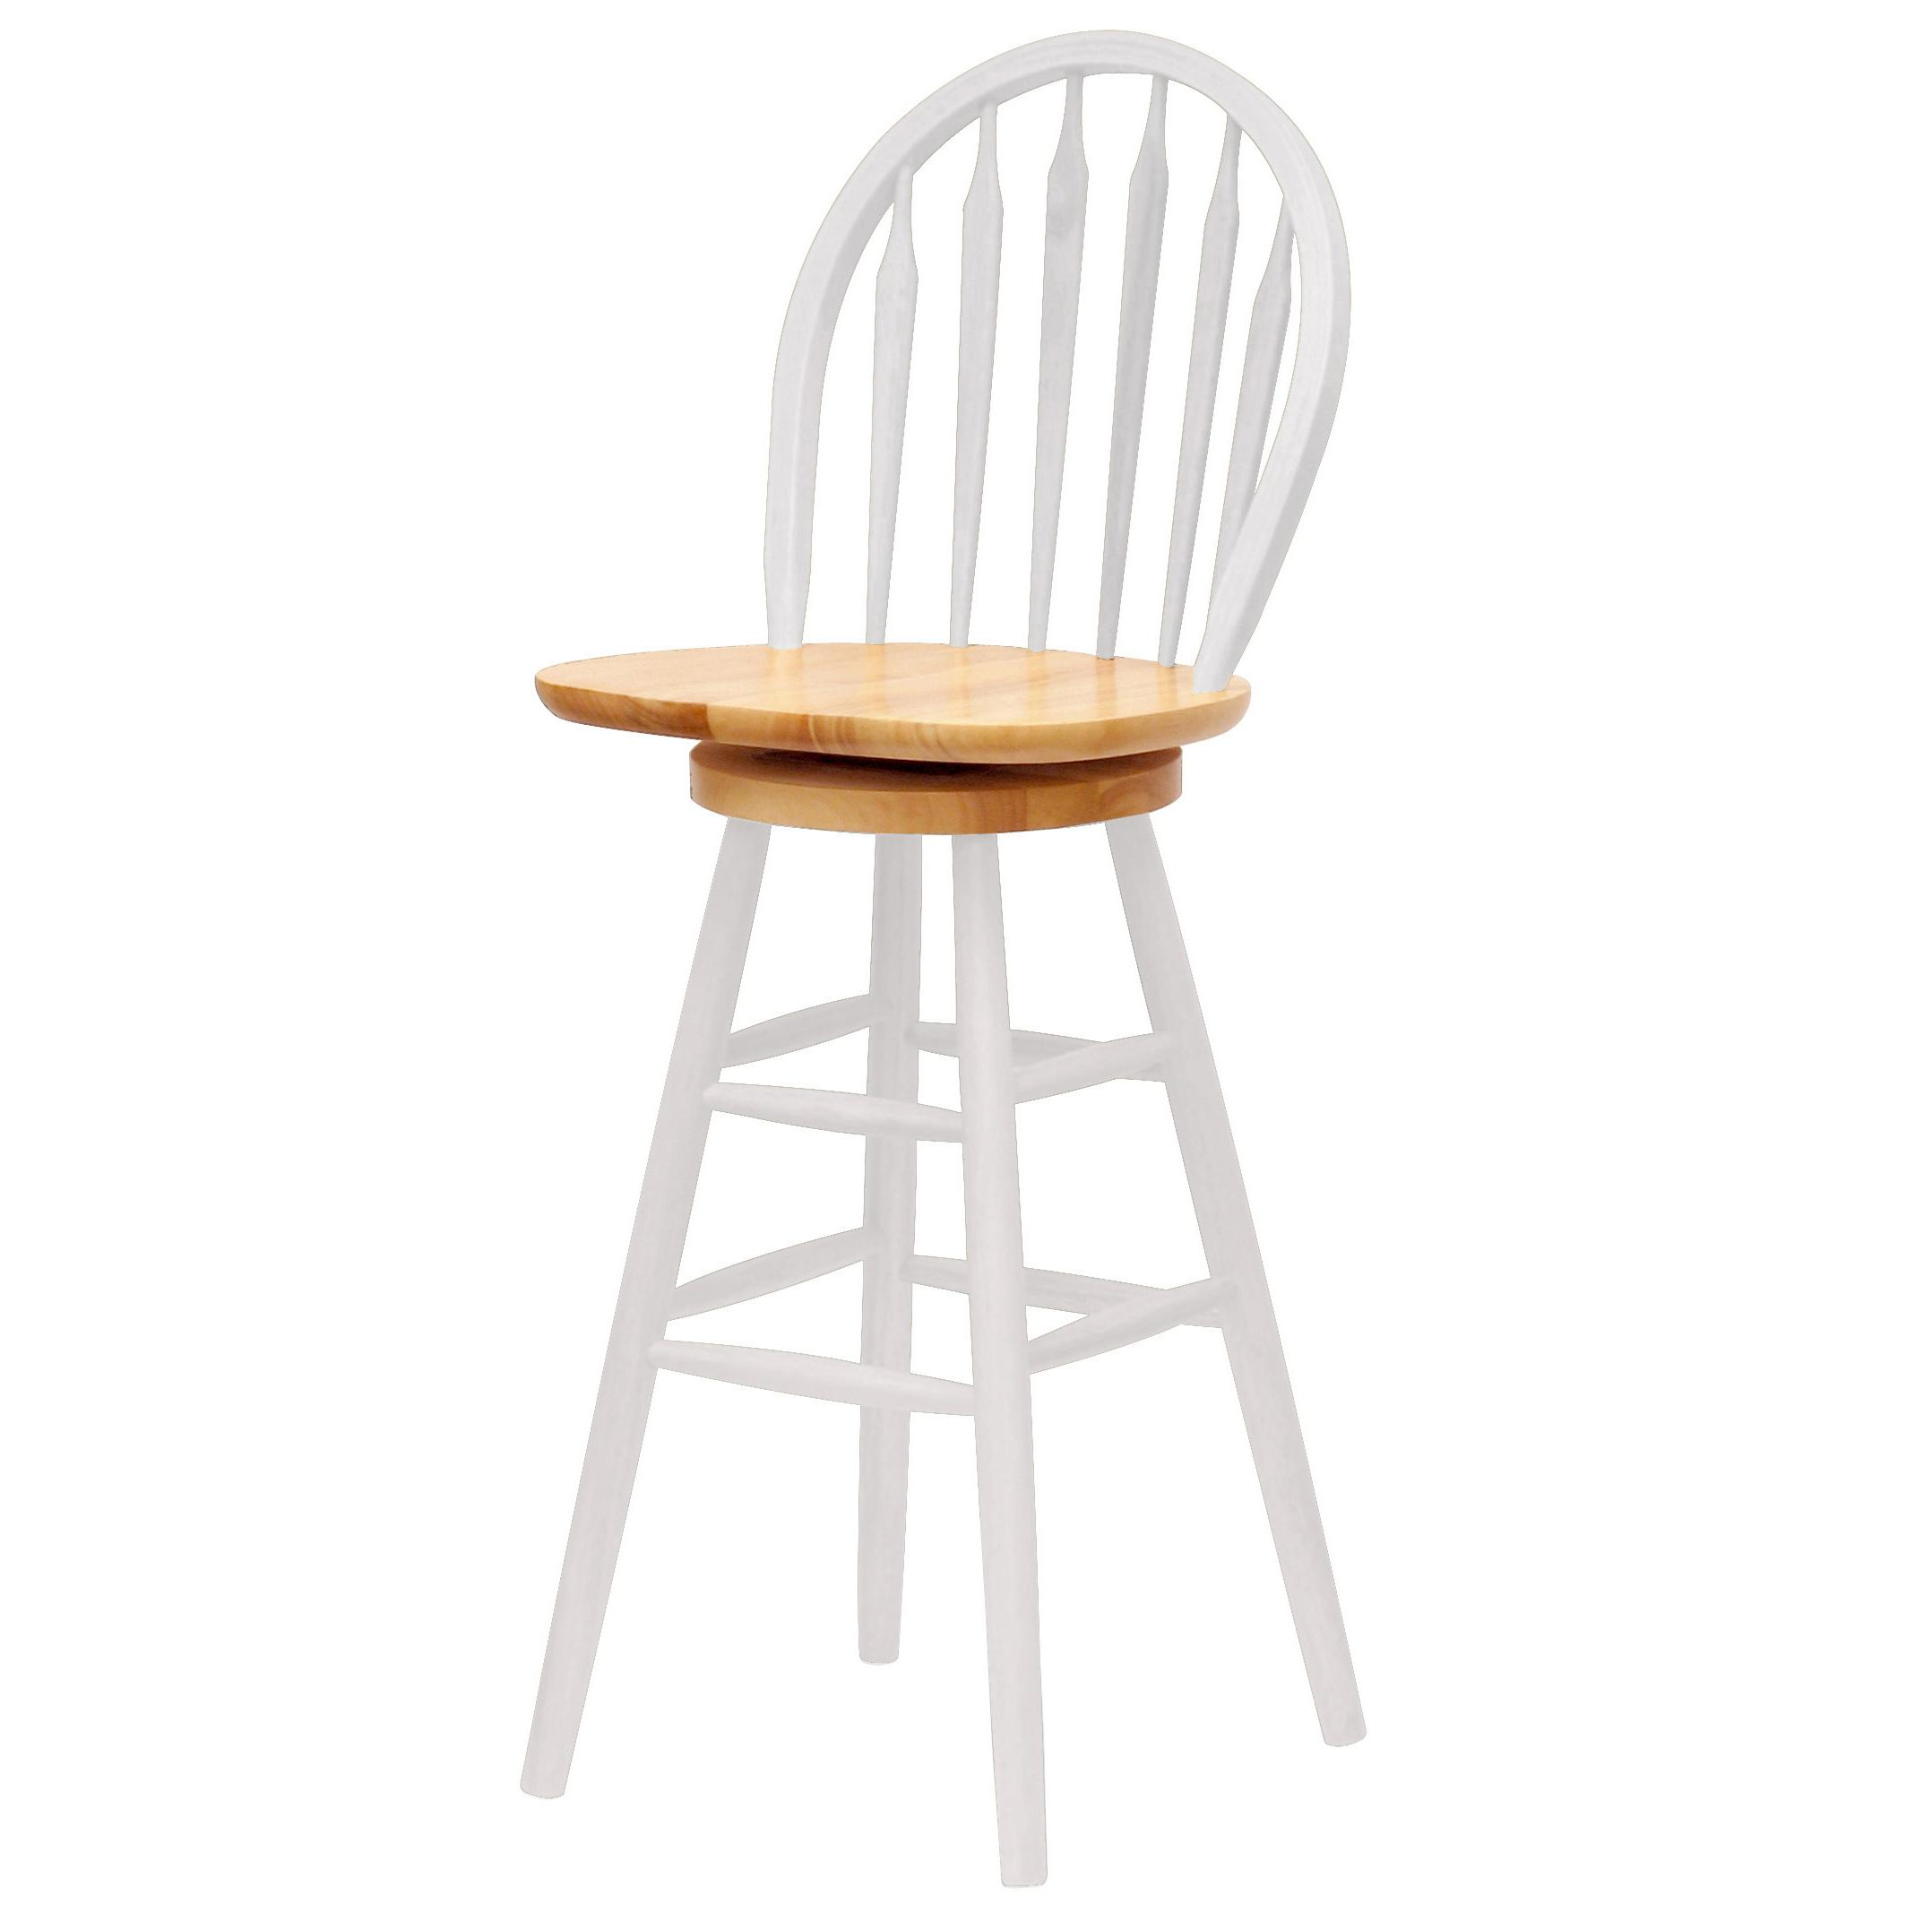 Winsome Wood 30 Inch Windsor Swivel Seat Barstool